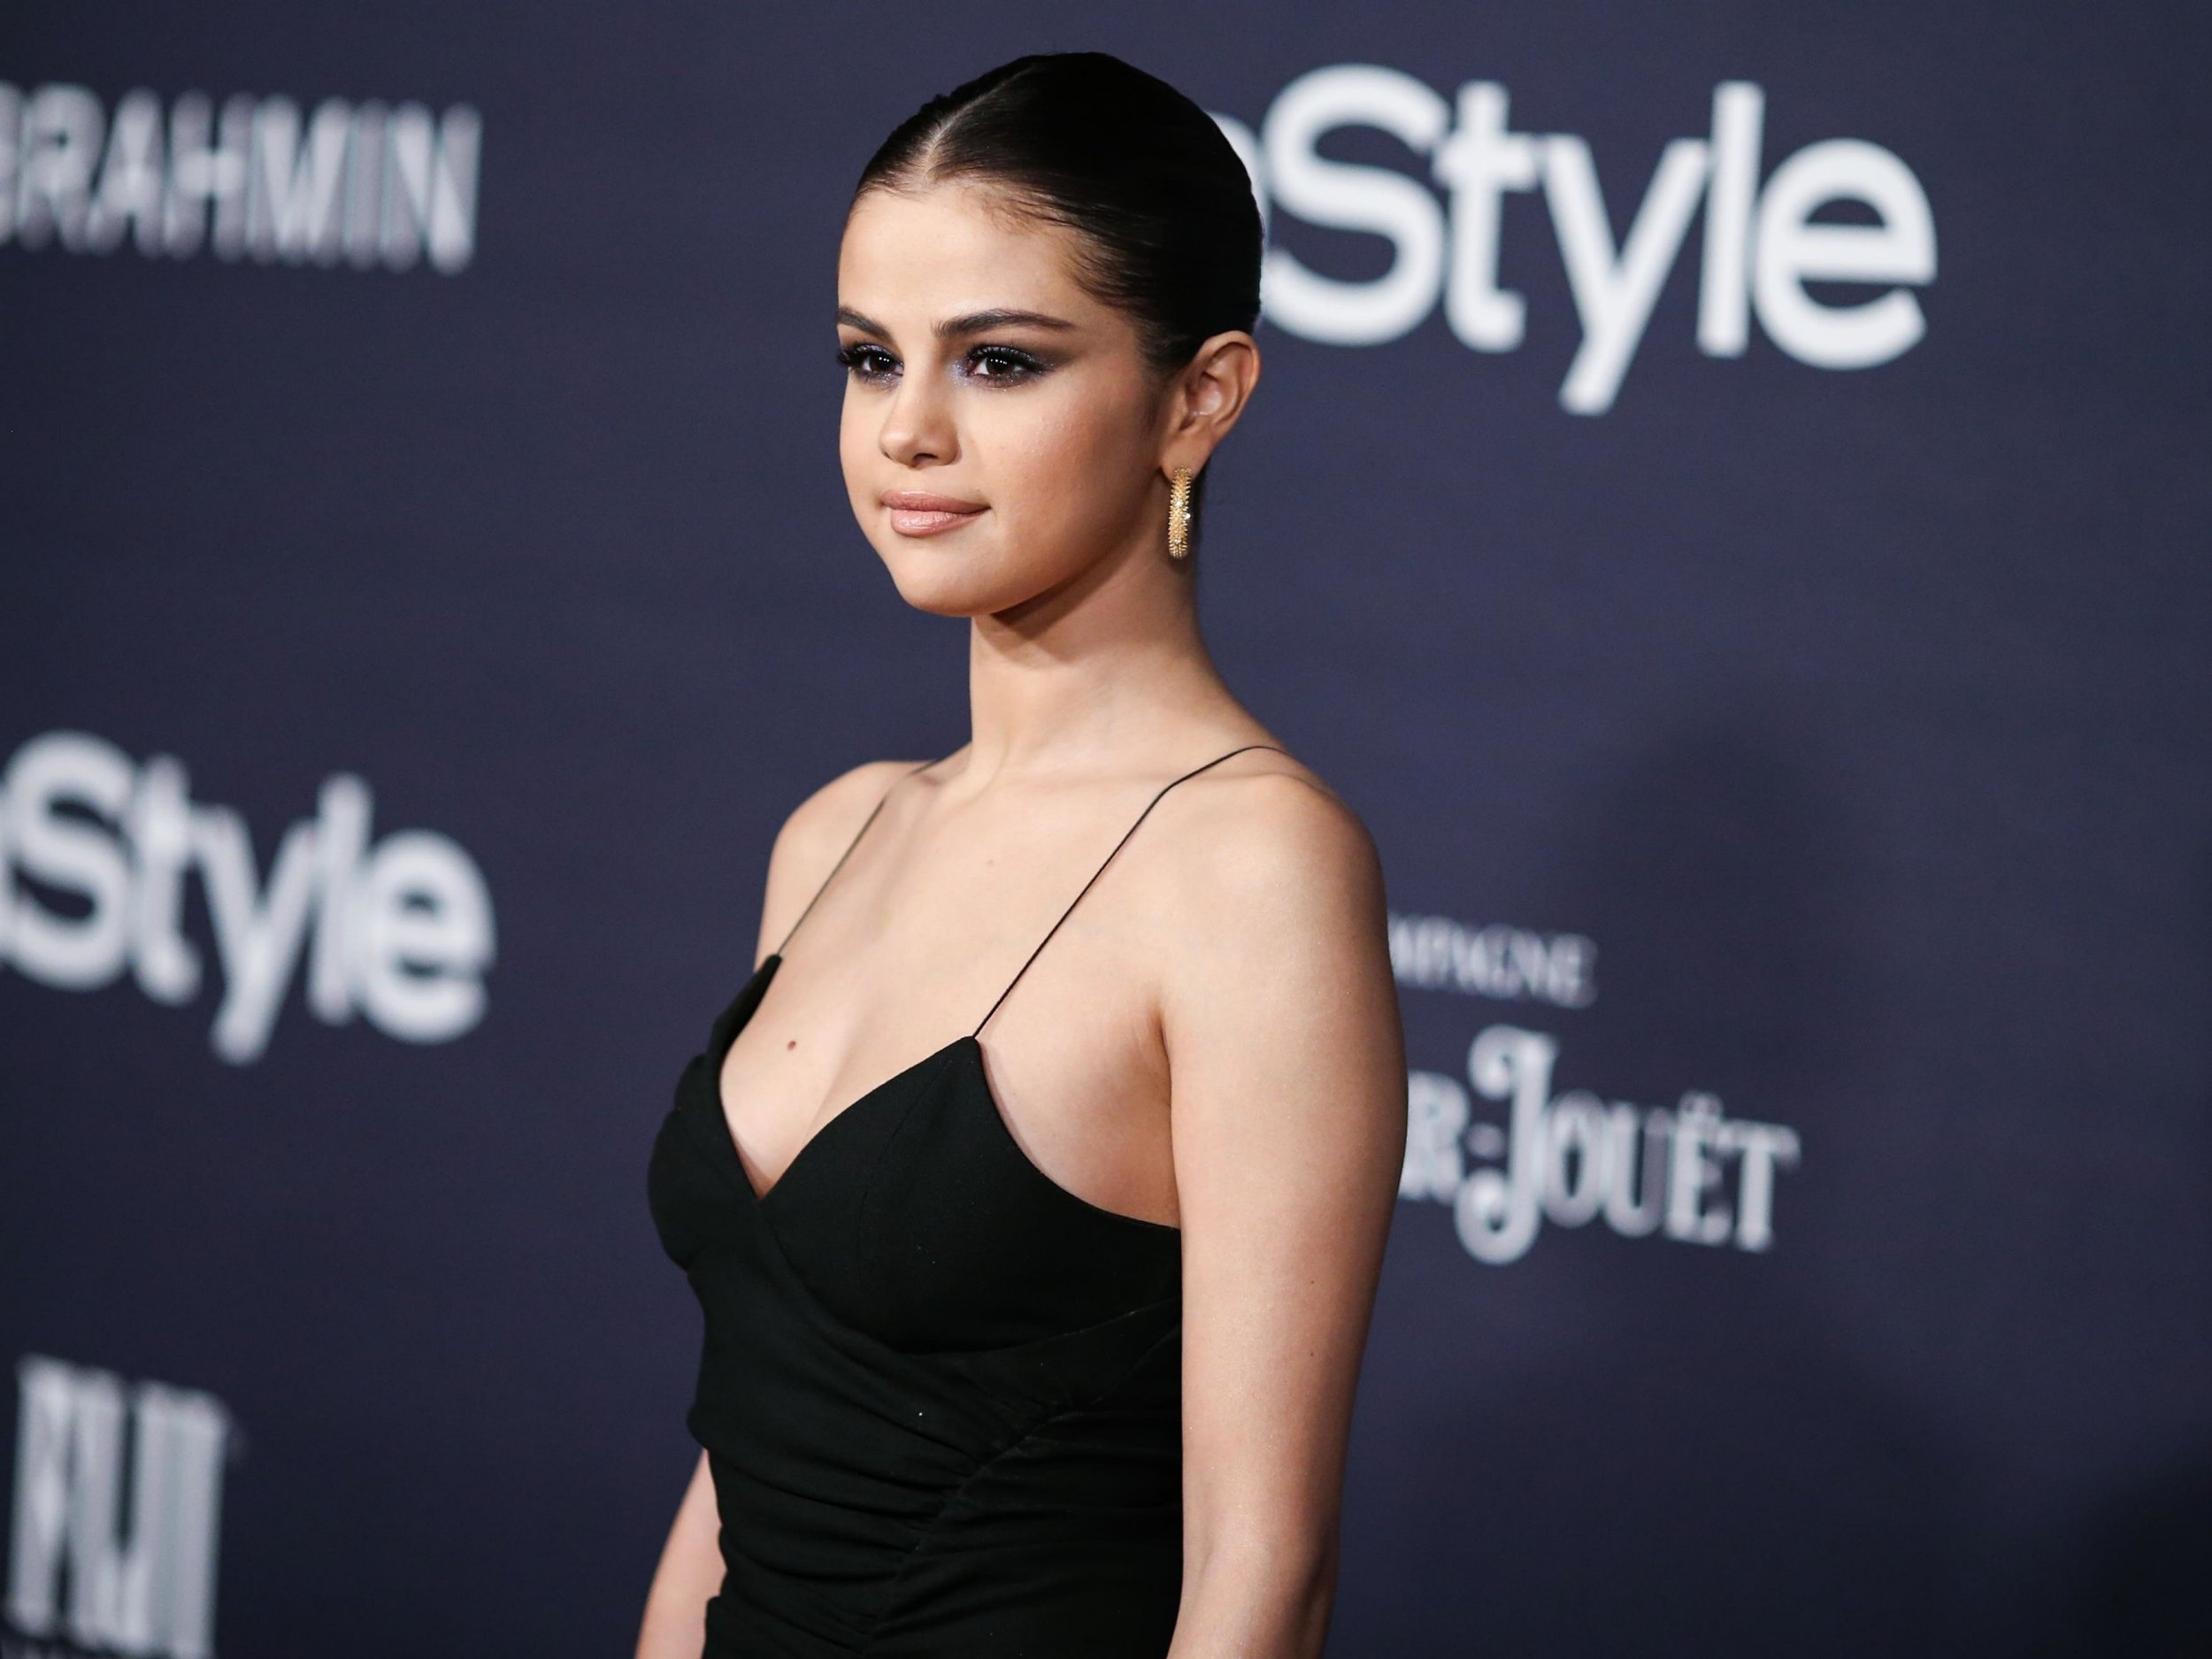 Selena Gomez 'heads back to Texas for head space' amid Justin Bieber split rumours